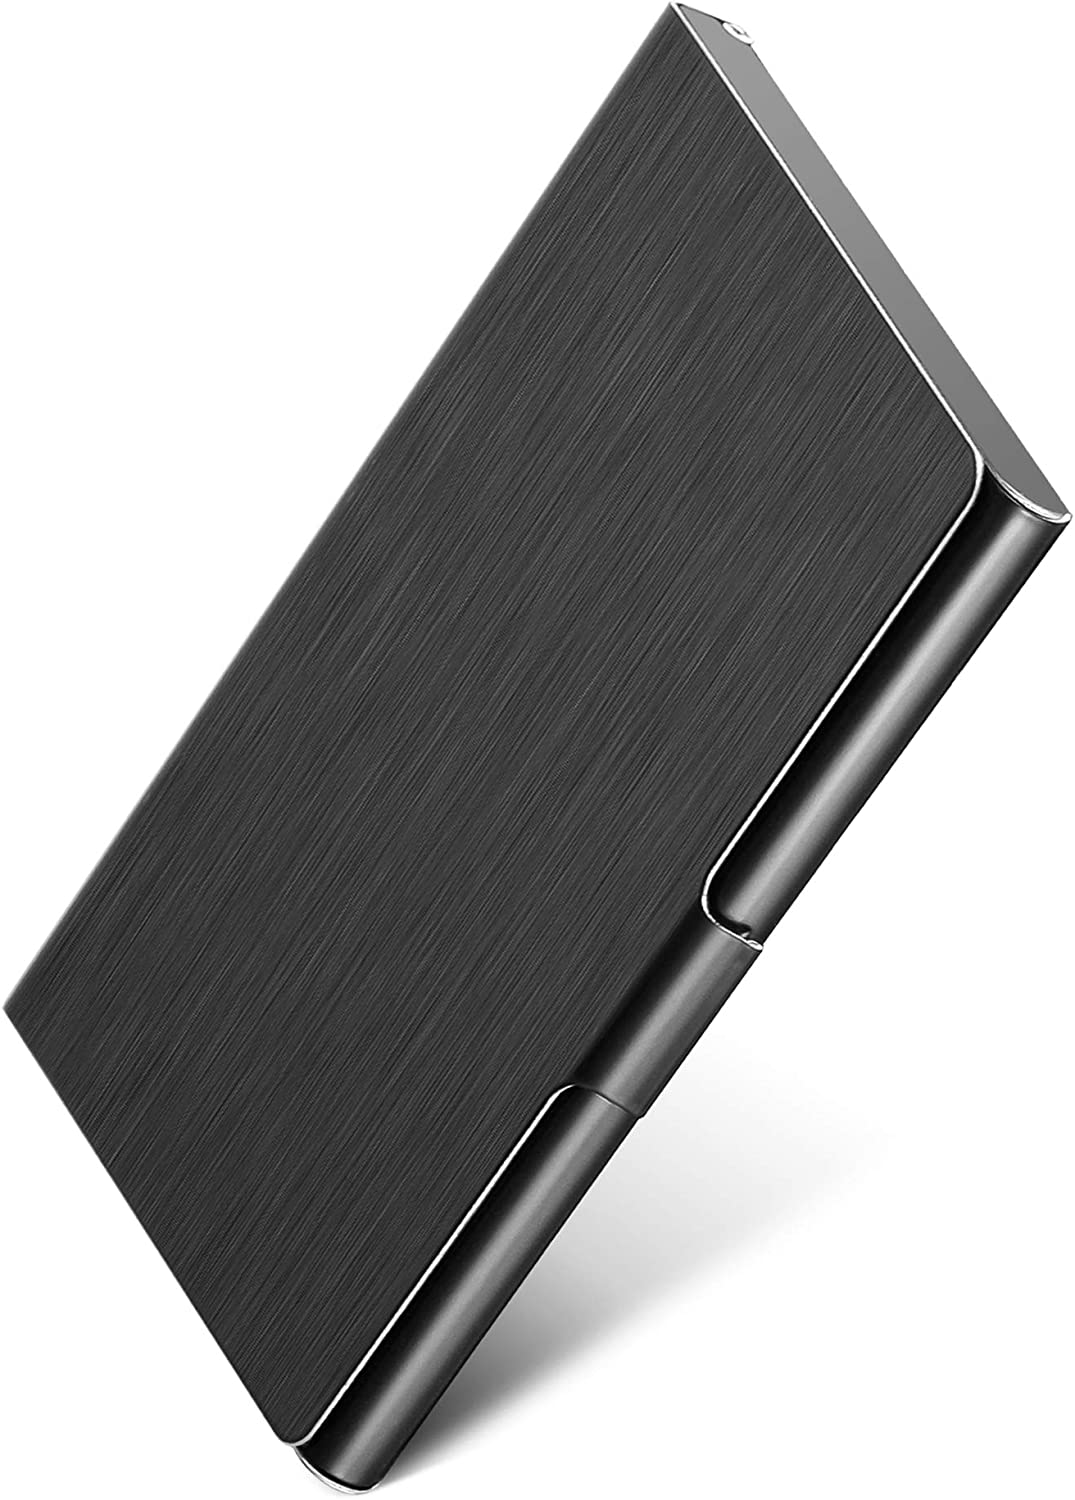 MaxGear Metal Business Card Holder for Men & Women, Pocket Business Card Case Slim Business Card Wallet Business Card Holders Name Card Holder, 3.7 x 2.3 x 0.3 inches, Stainless Steel, Black